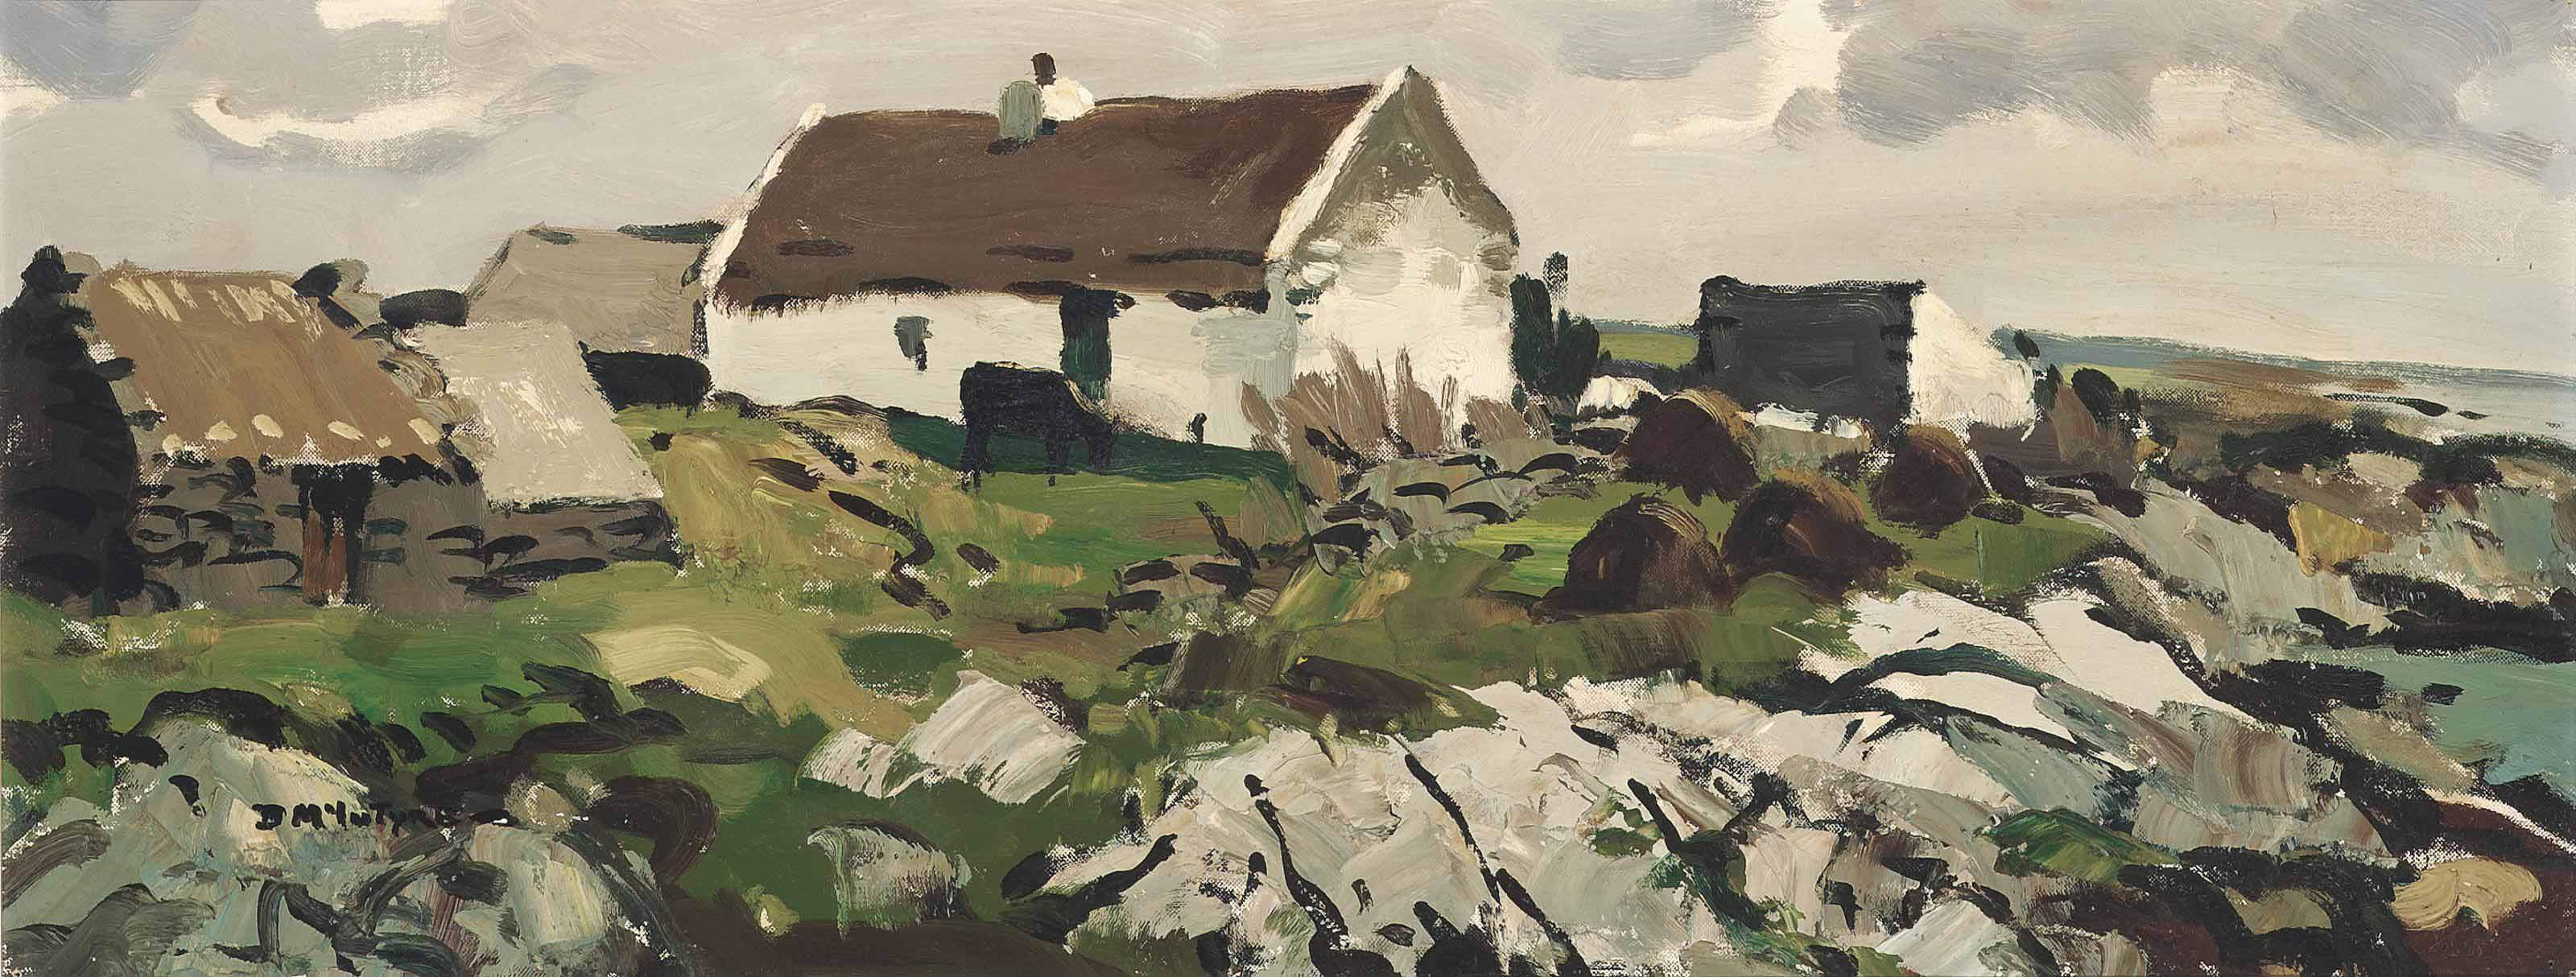 Cottage by the sea, Ballyconneely bay